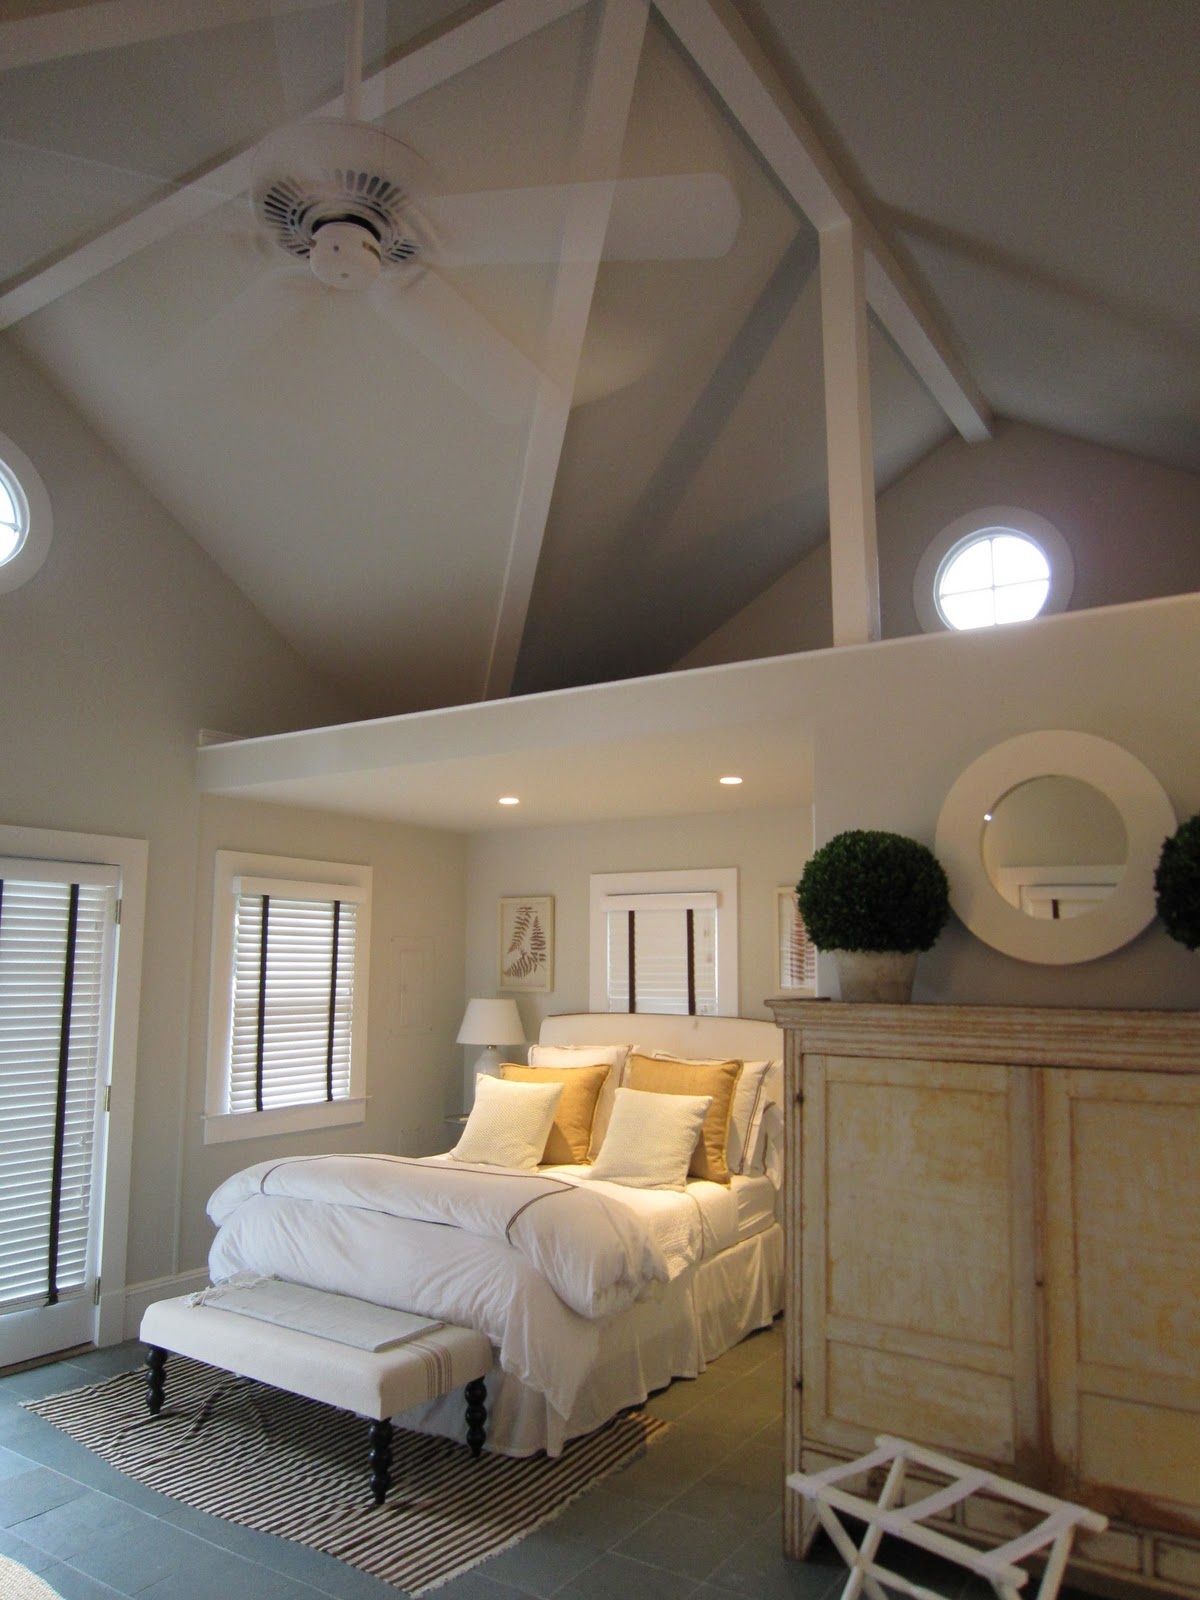 Janette mallory 39 s interior design inc blog timothy for Garage bedroom